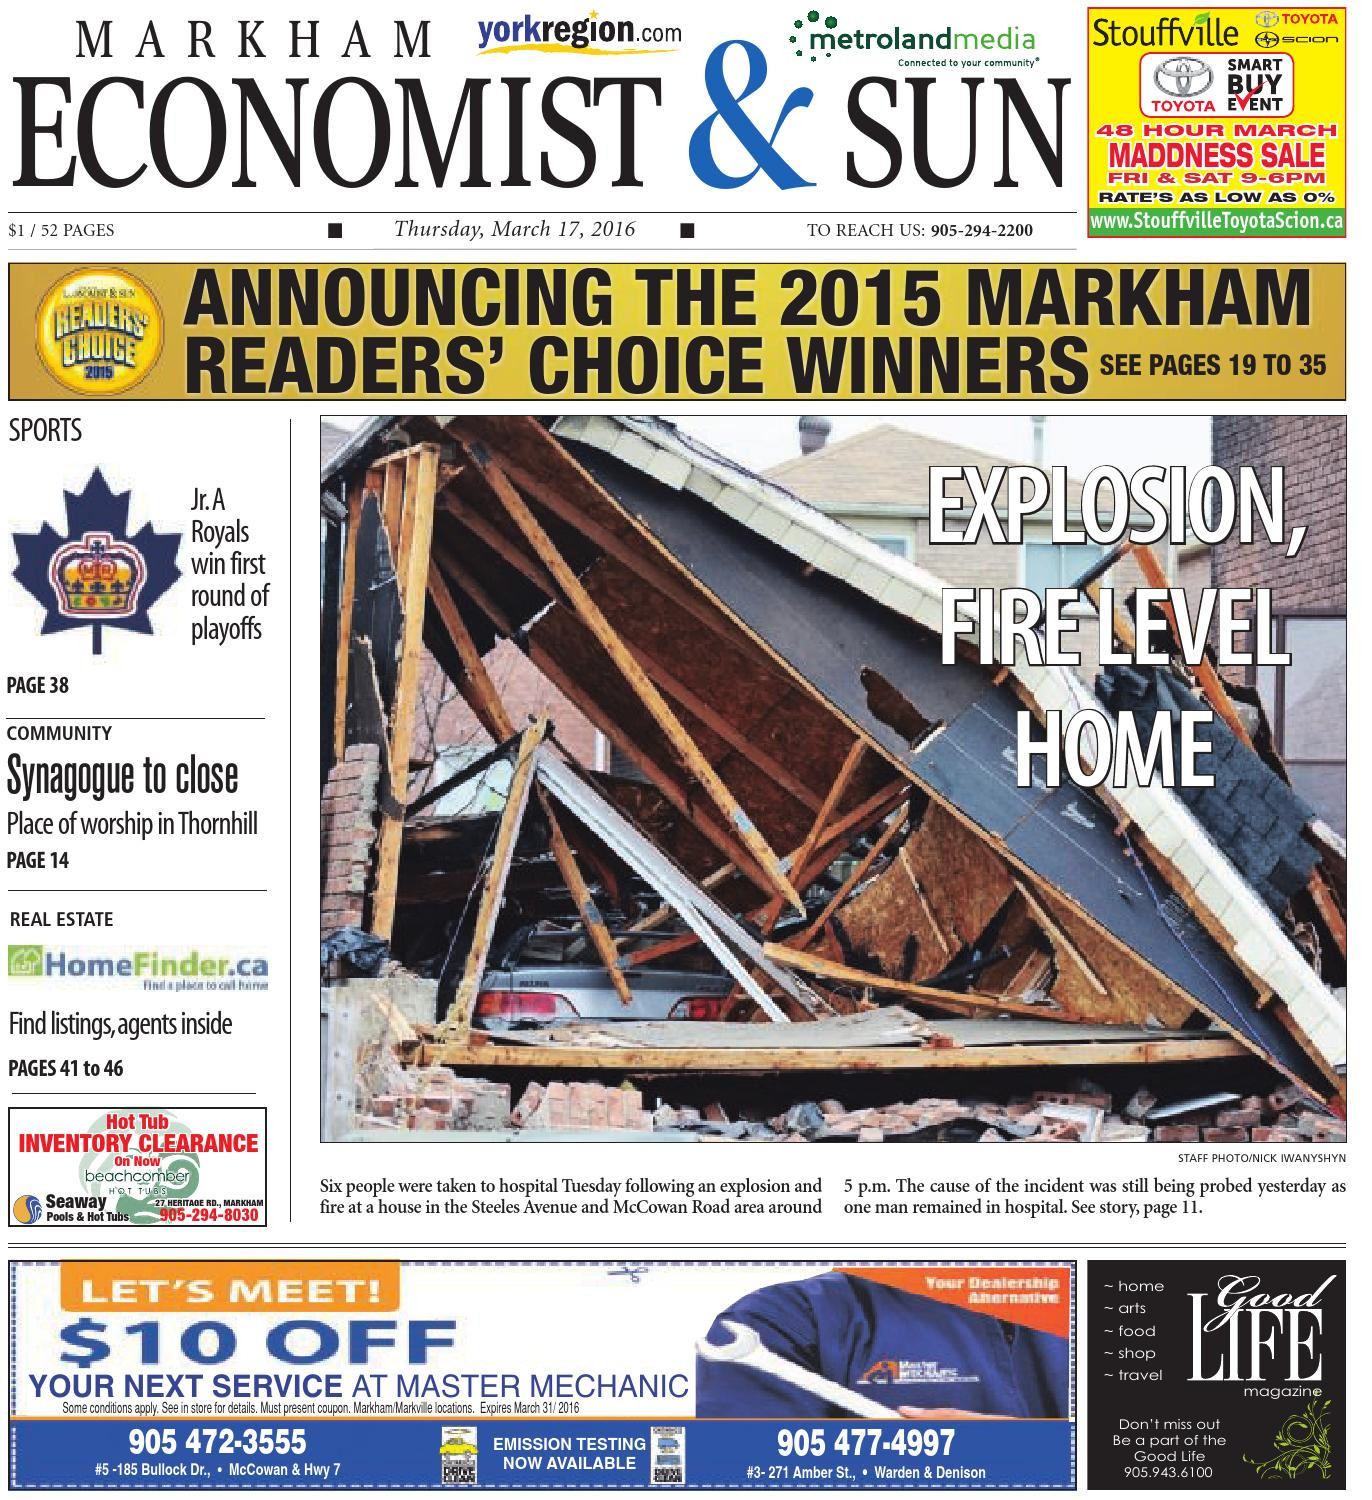 Hardwood Flooring Markham Ontario Of Markham Economist Sun March 17 2016 by Markham Economist Sun Throughout Markham Economist Sun March 17 2016 by Markham Economist Sun issuu